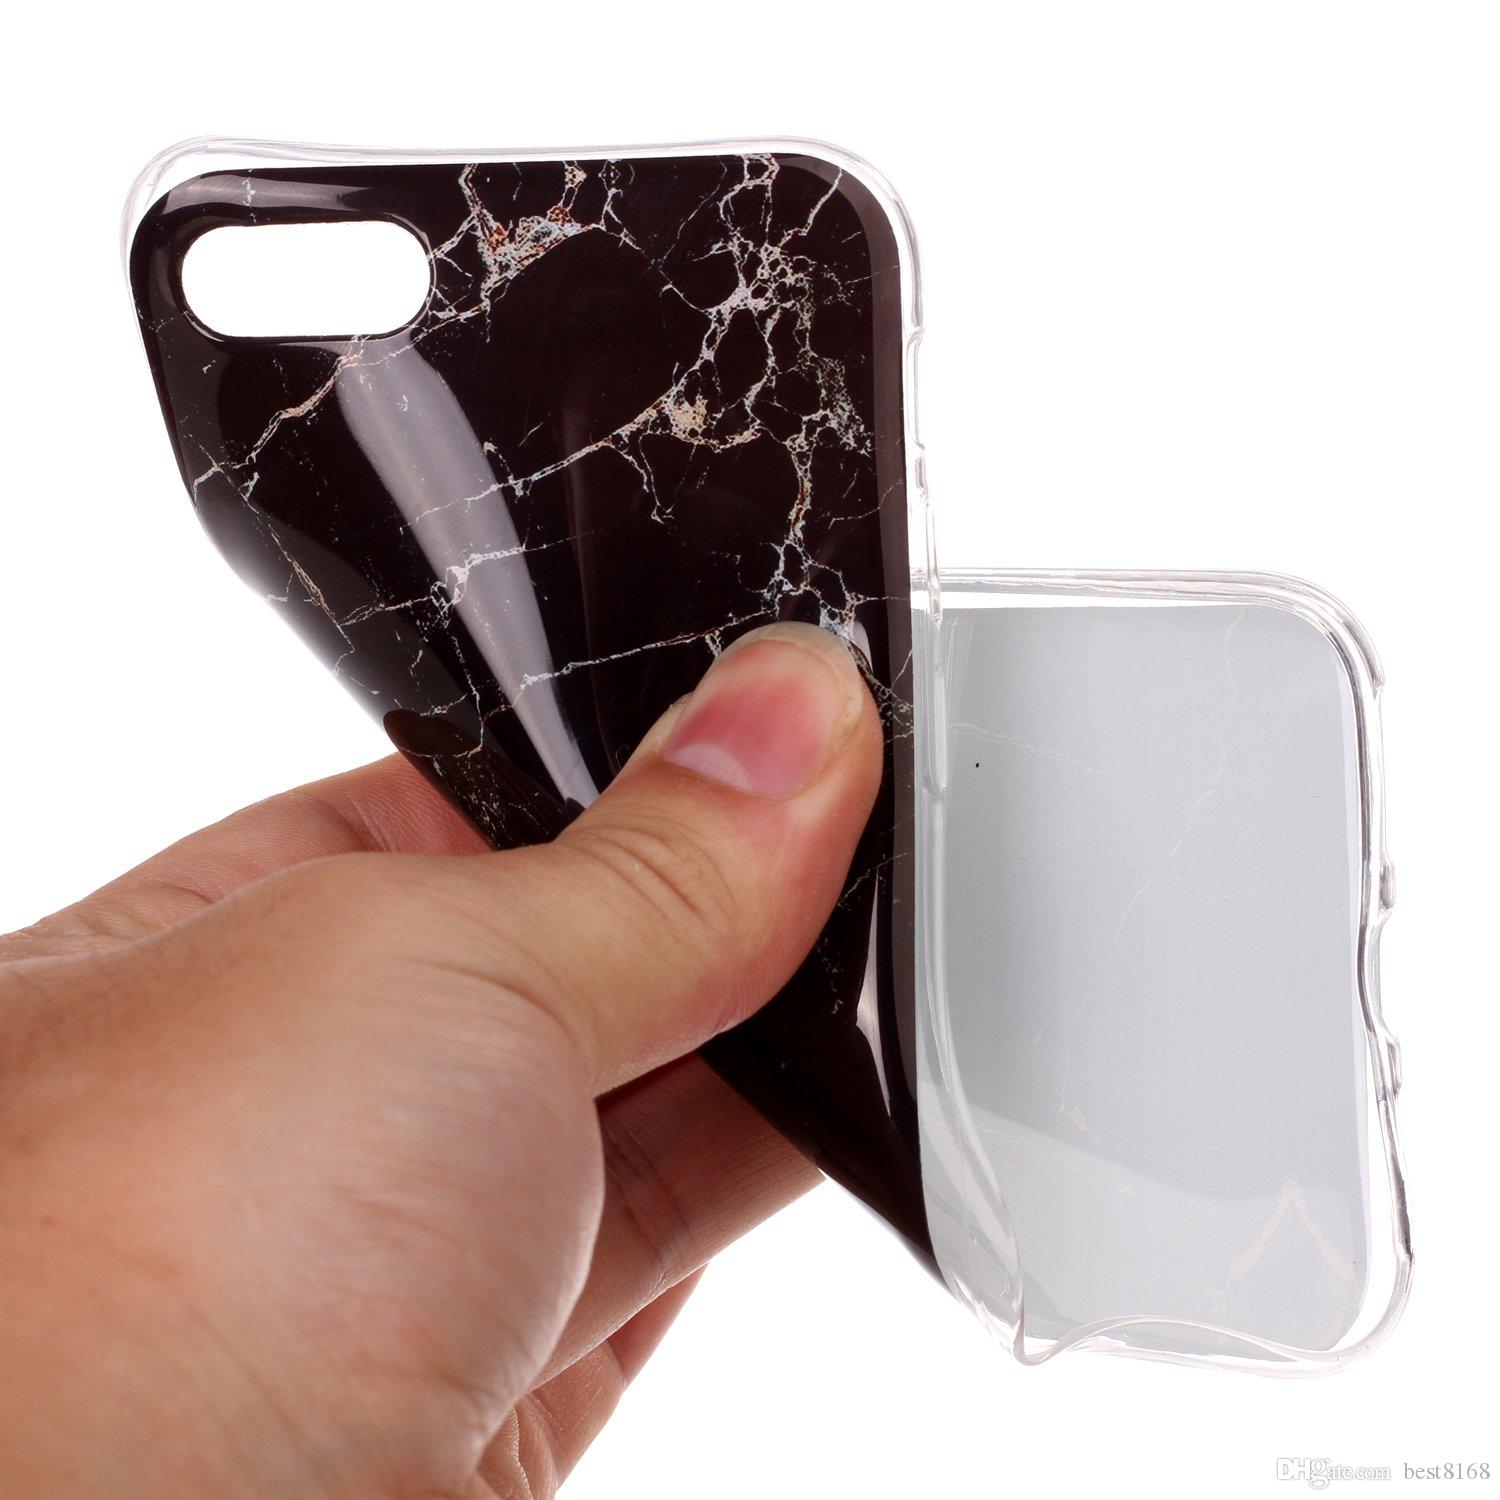 Marble Rock Stone Pattern Soft TPU IMD Case For iPhone 8 7/7Plus/6 6S/Plus/SE 5 5S/5C/4 4S/Ipod Touch 6 5 6g 5g Silicone Gel Back Cover Skin